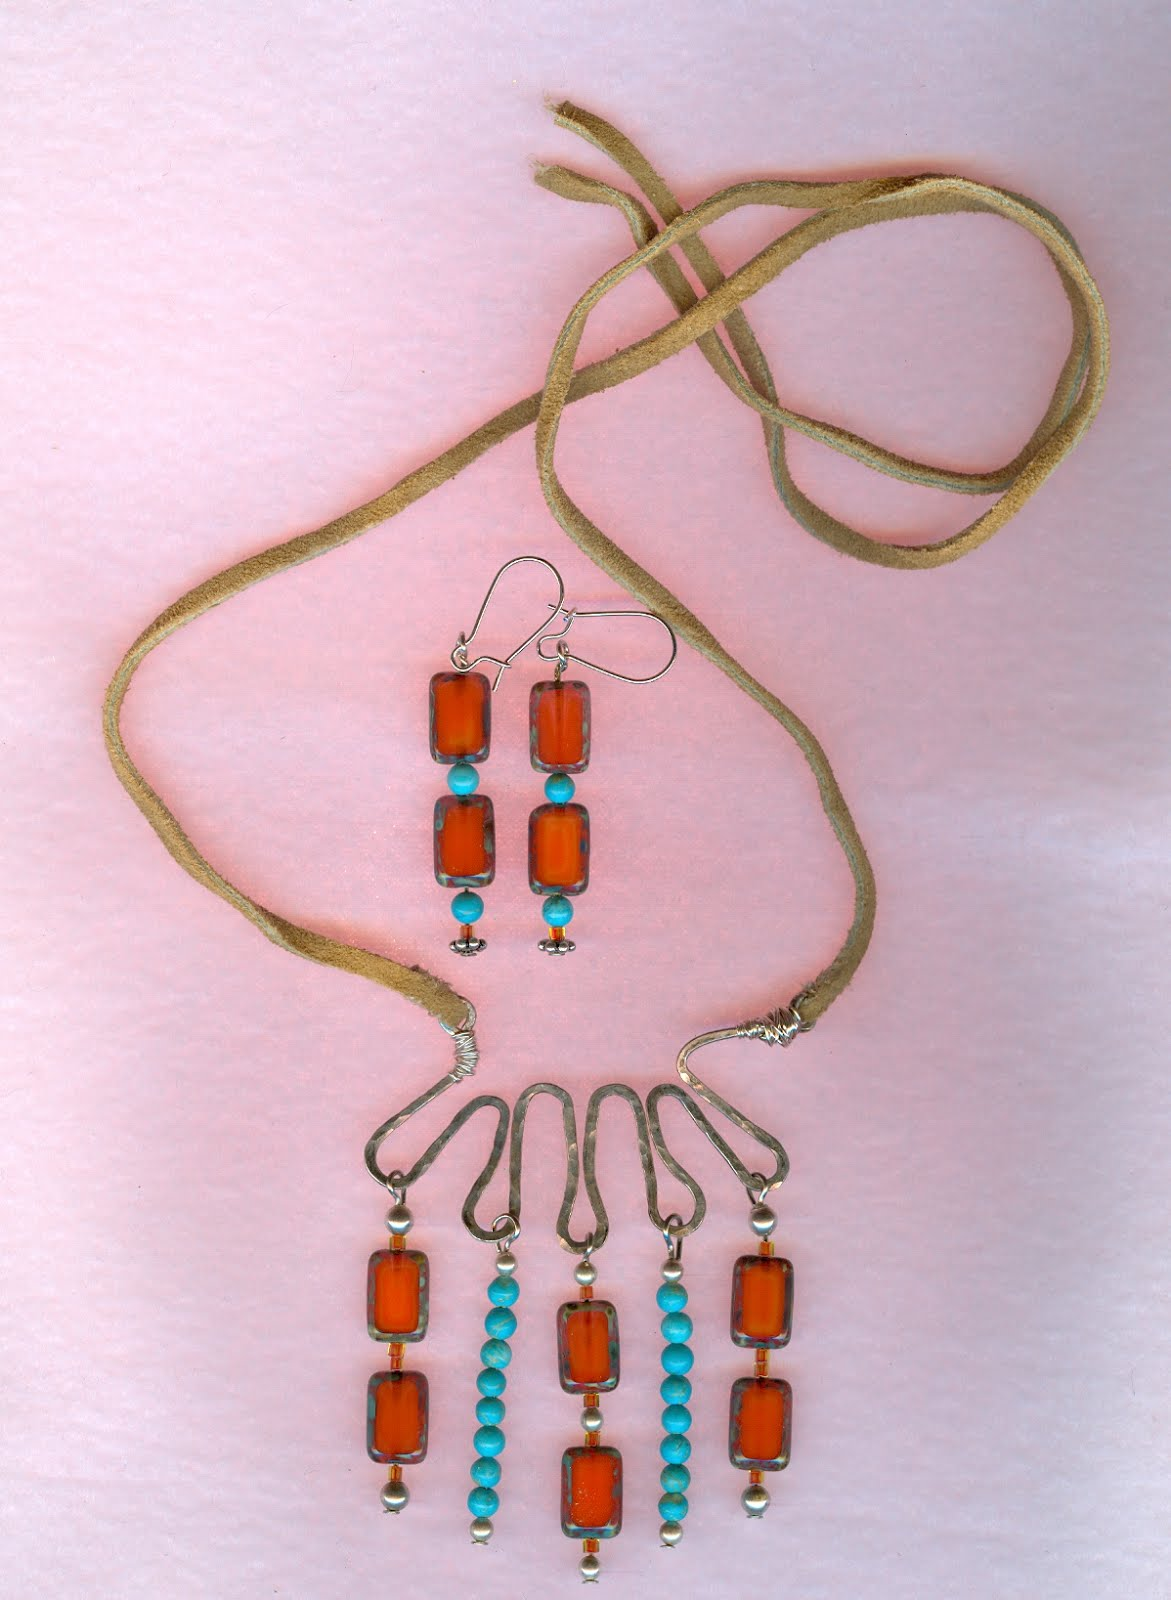 Bohemian necklace and earrings